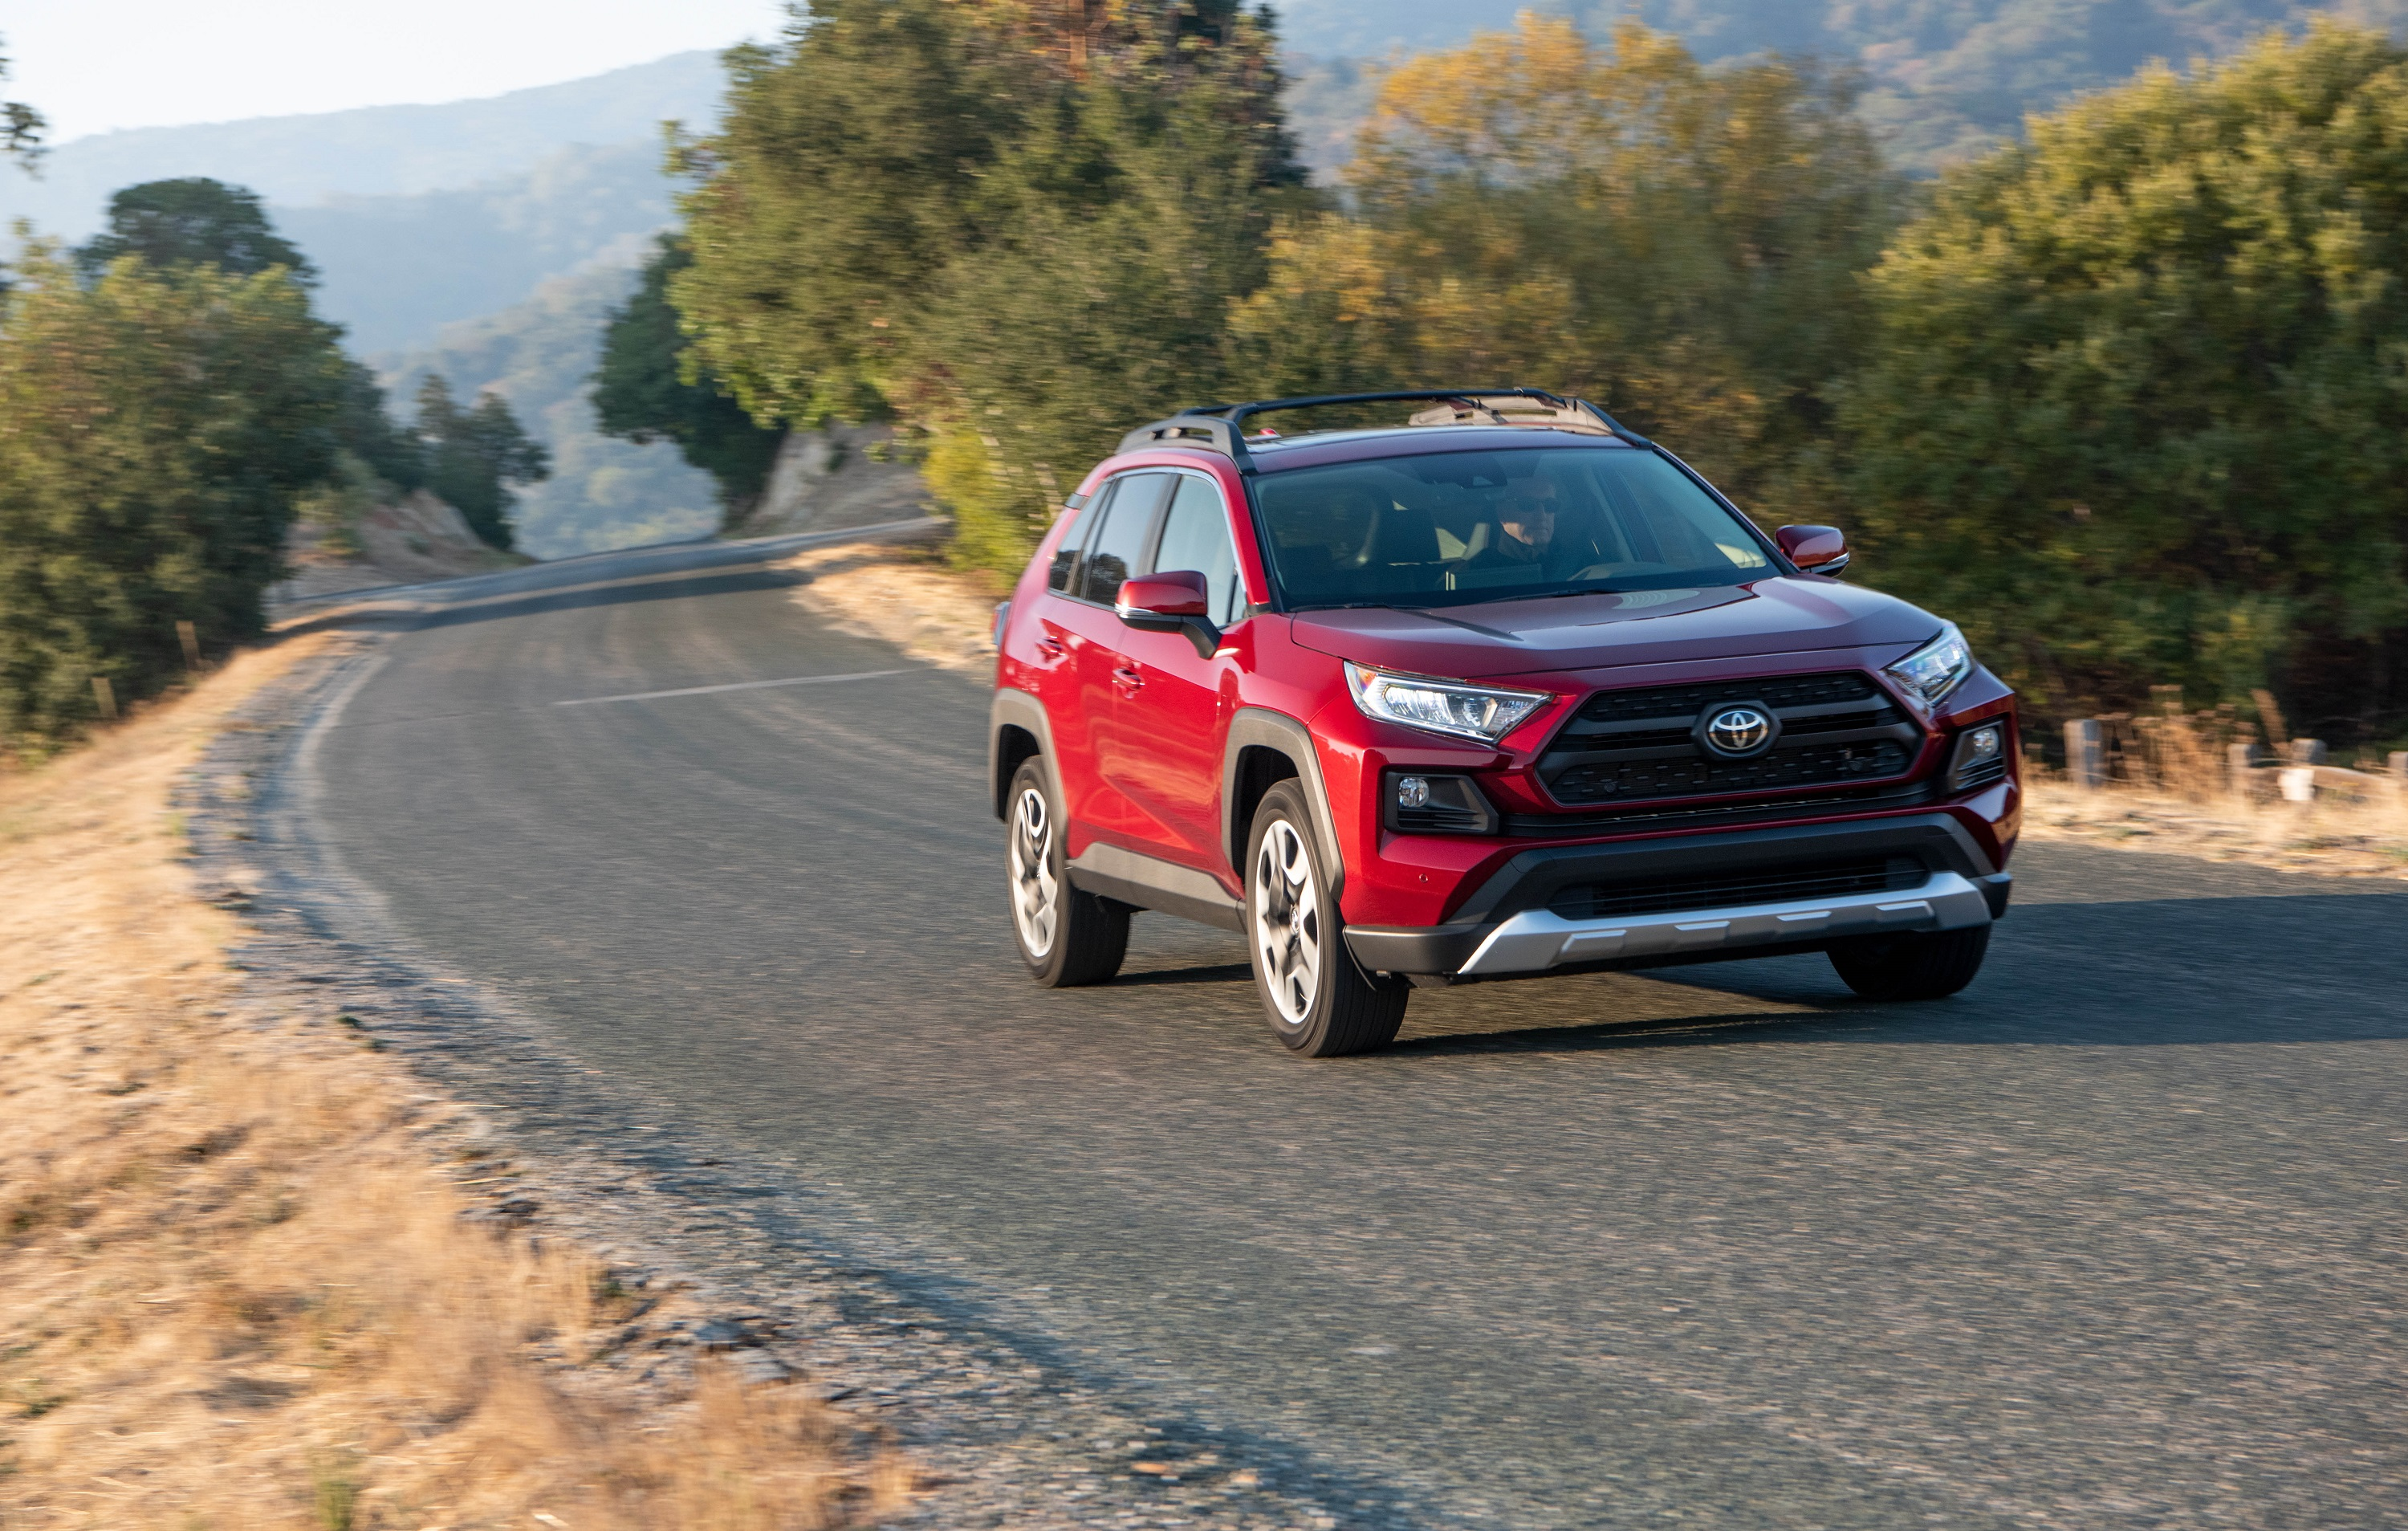 Manufacturer photo: For the all-new RAV4, an emphasis is placed on maximizing the presence of a small SUV while maintaining high levels of finesse inside and out